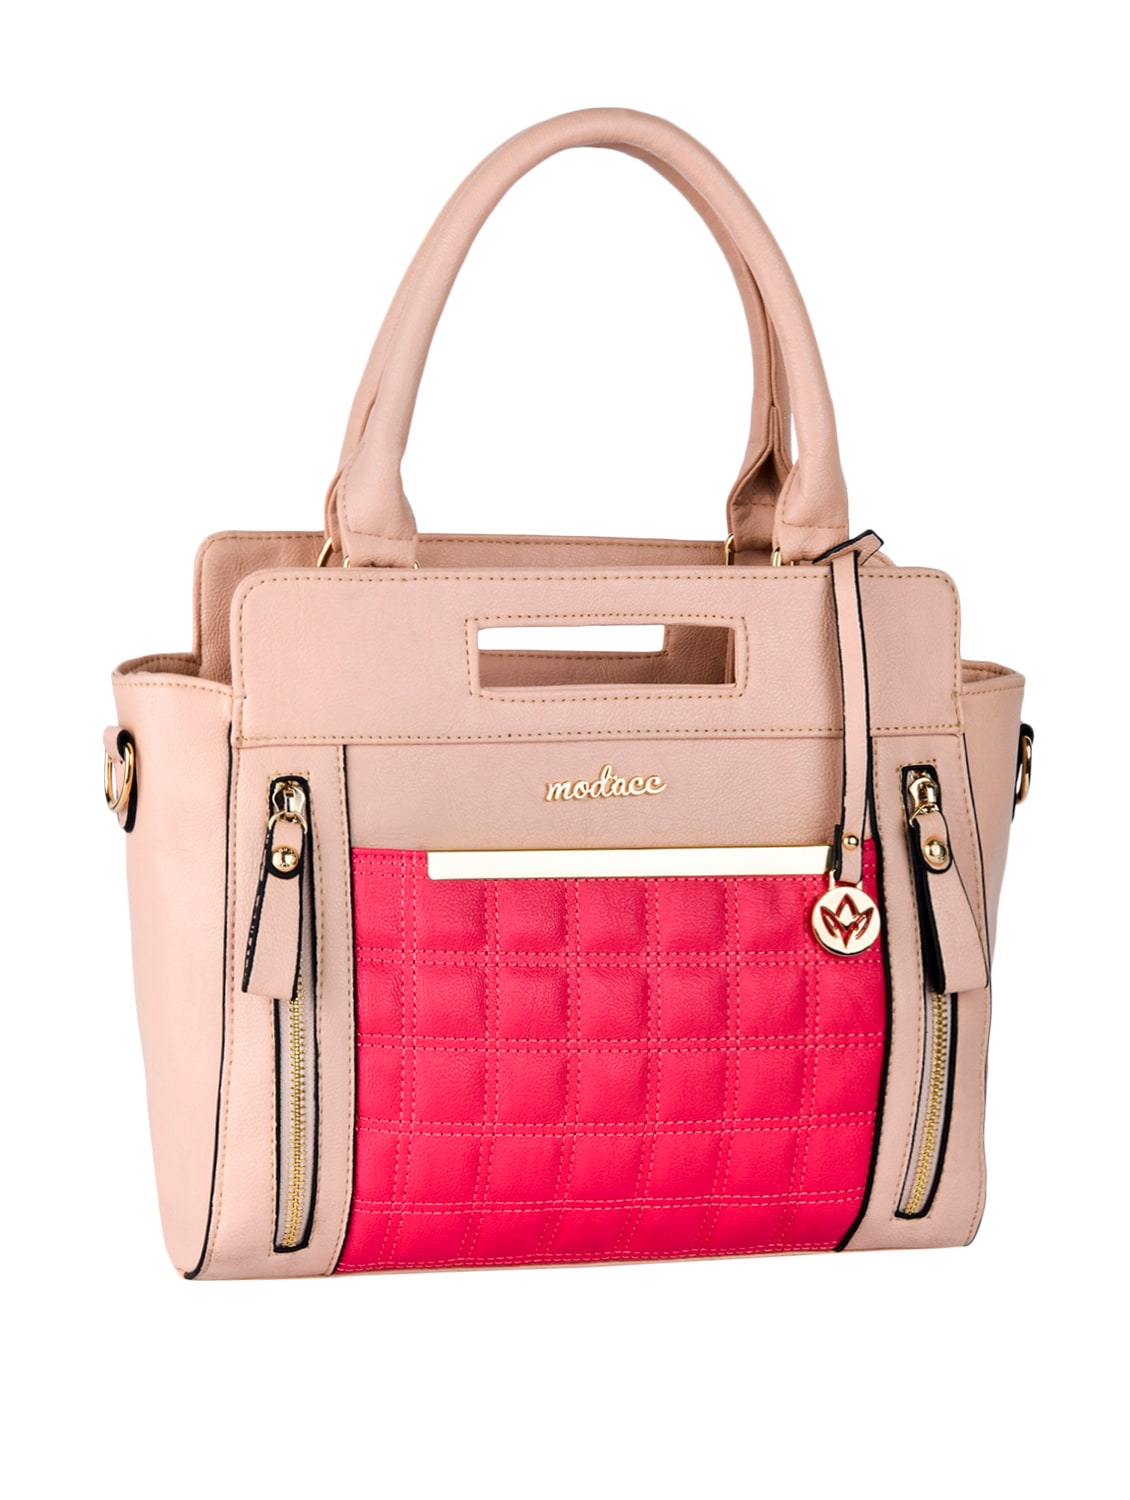 Quilted Front Patch Leatherette Handbag - Mod'acc